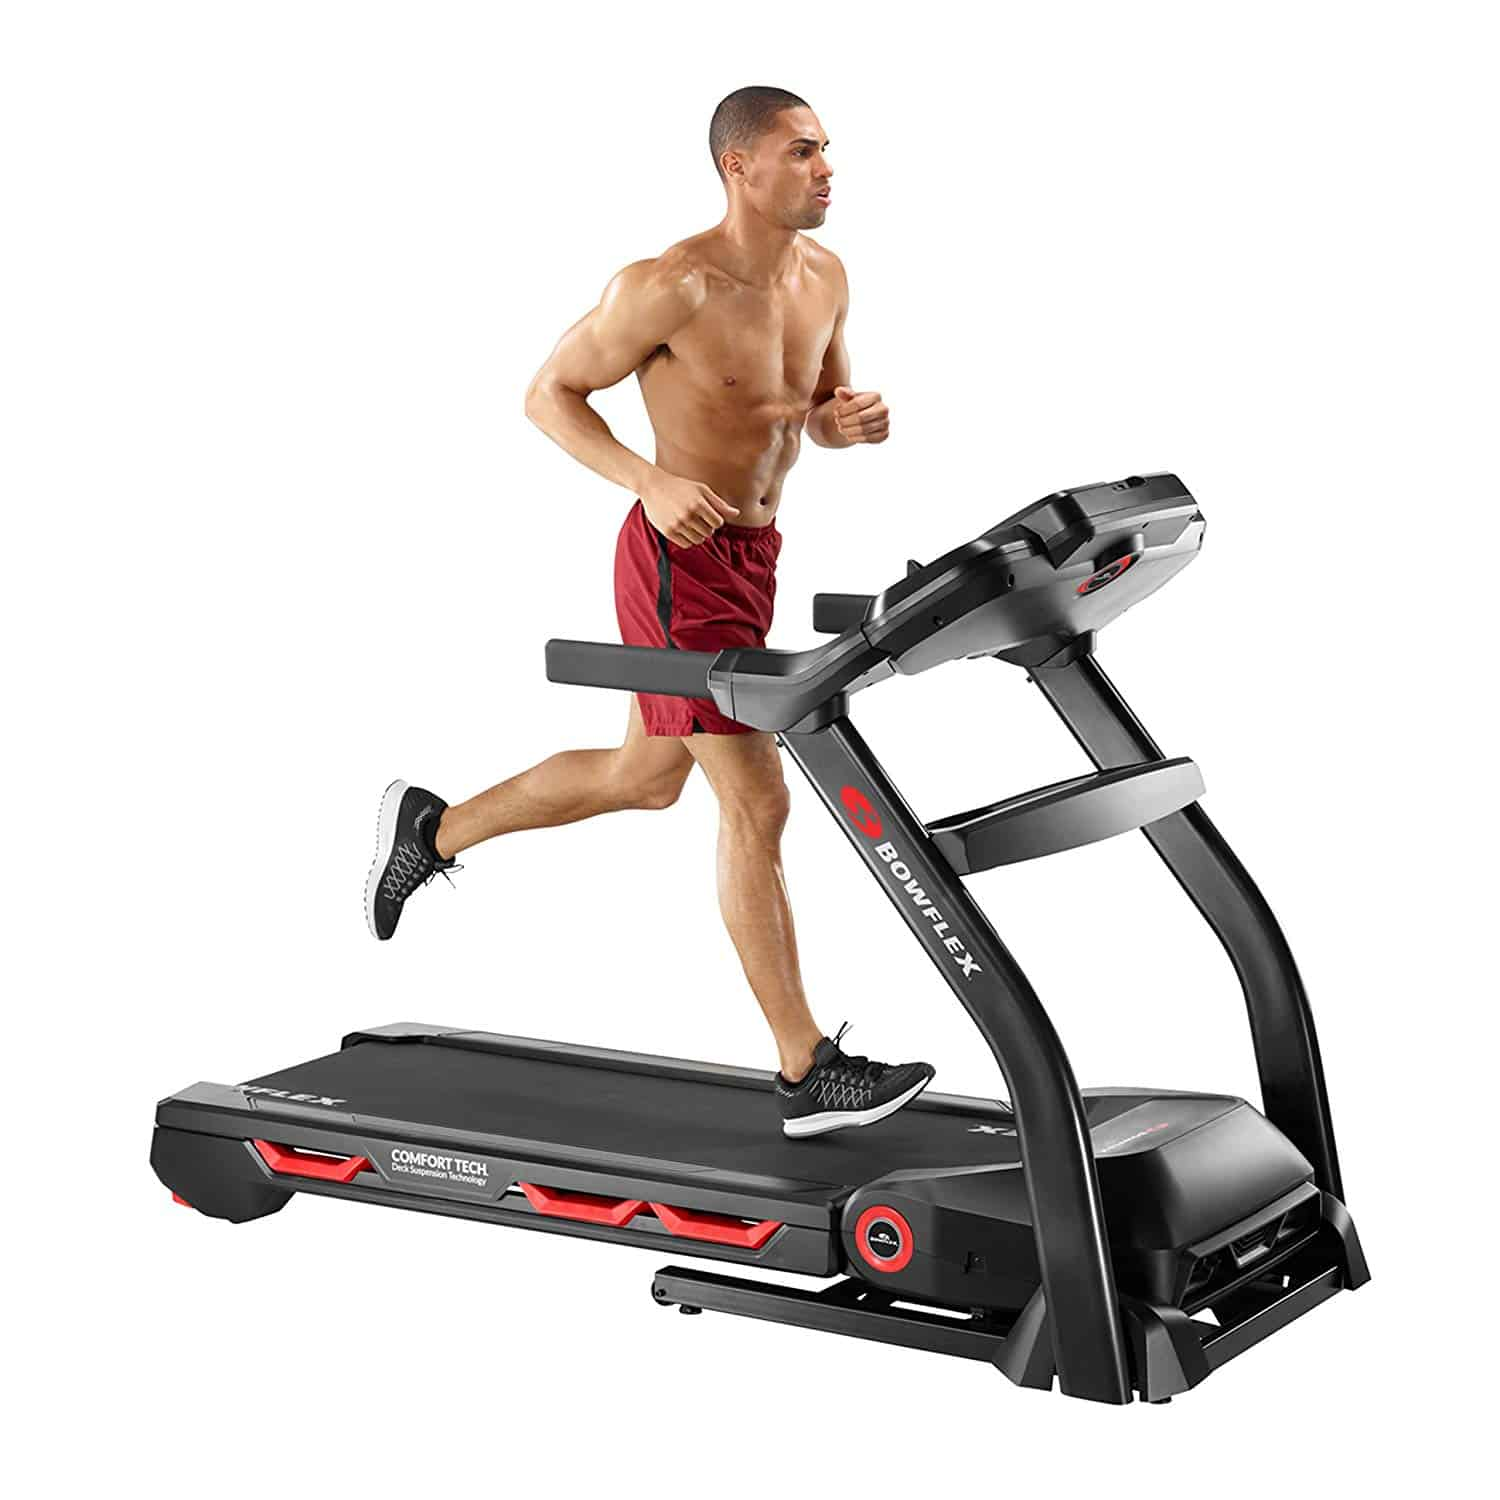 Shirtless man in red shorts running in a Bowflex treadmill